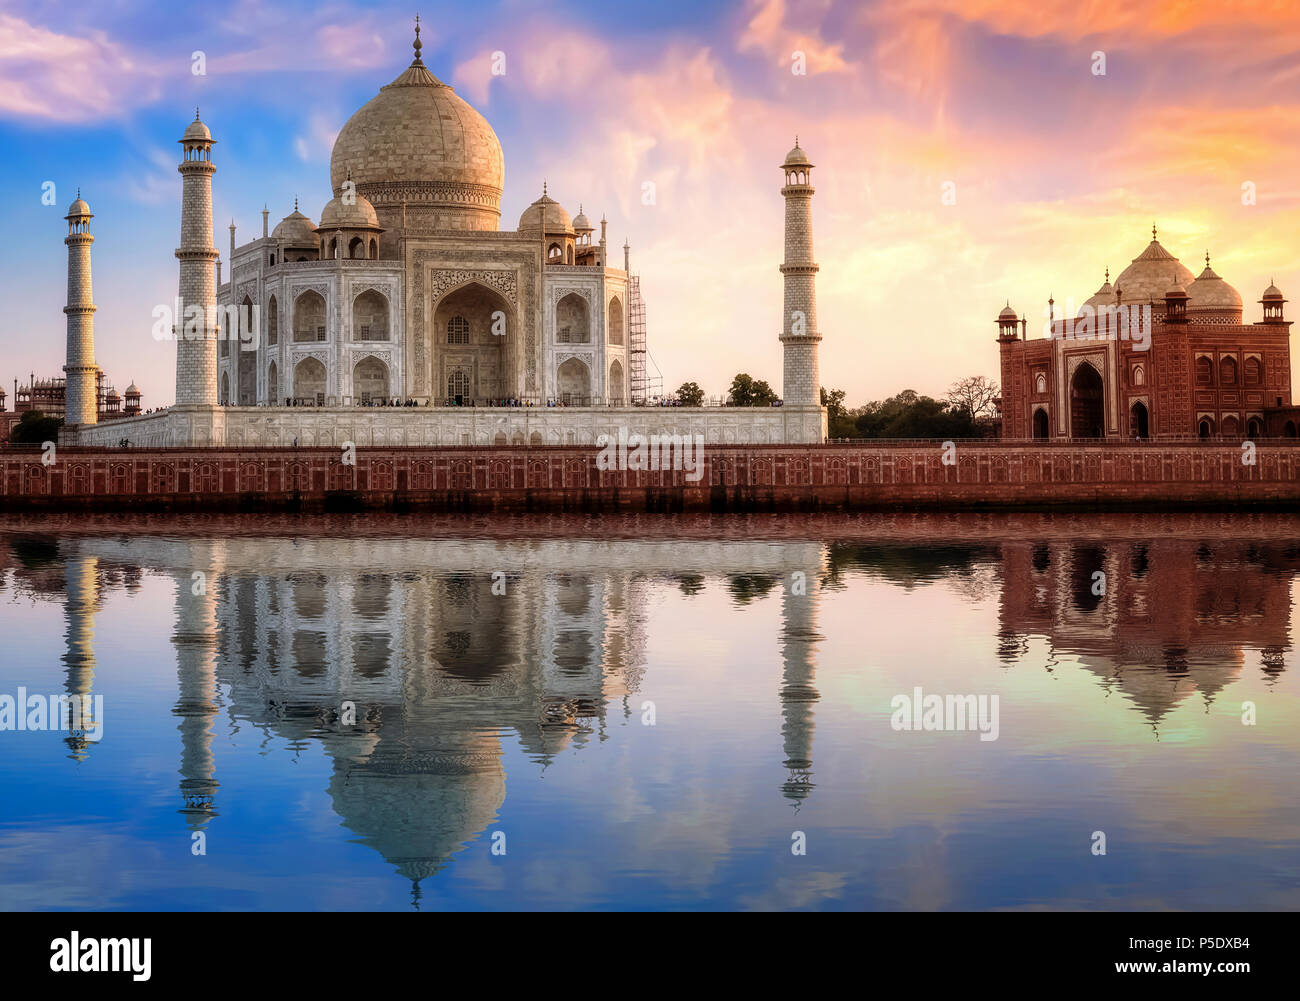 Taj Mahal Agra India with east gate at sunset with moody sky. - Stock Image